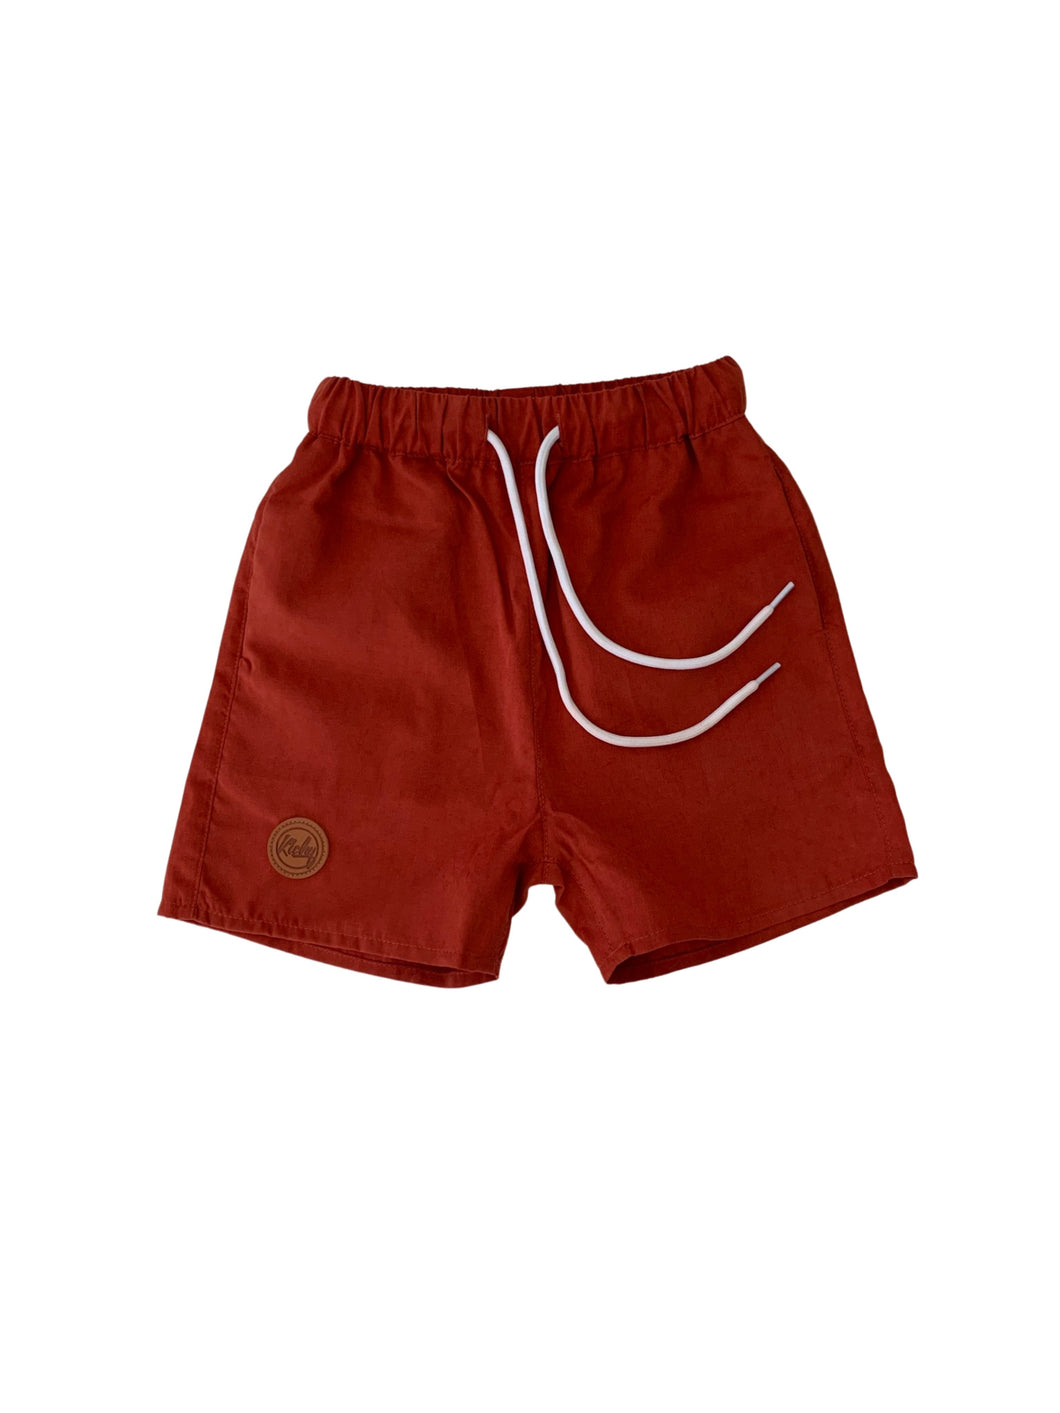 Board Shorts - Rust Red